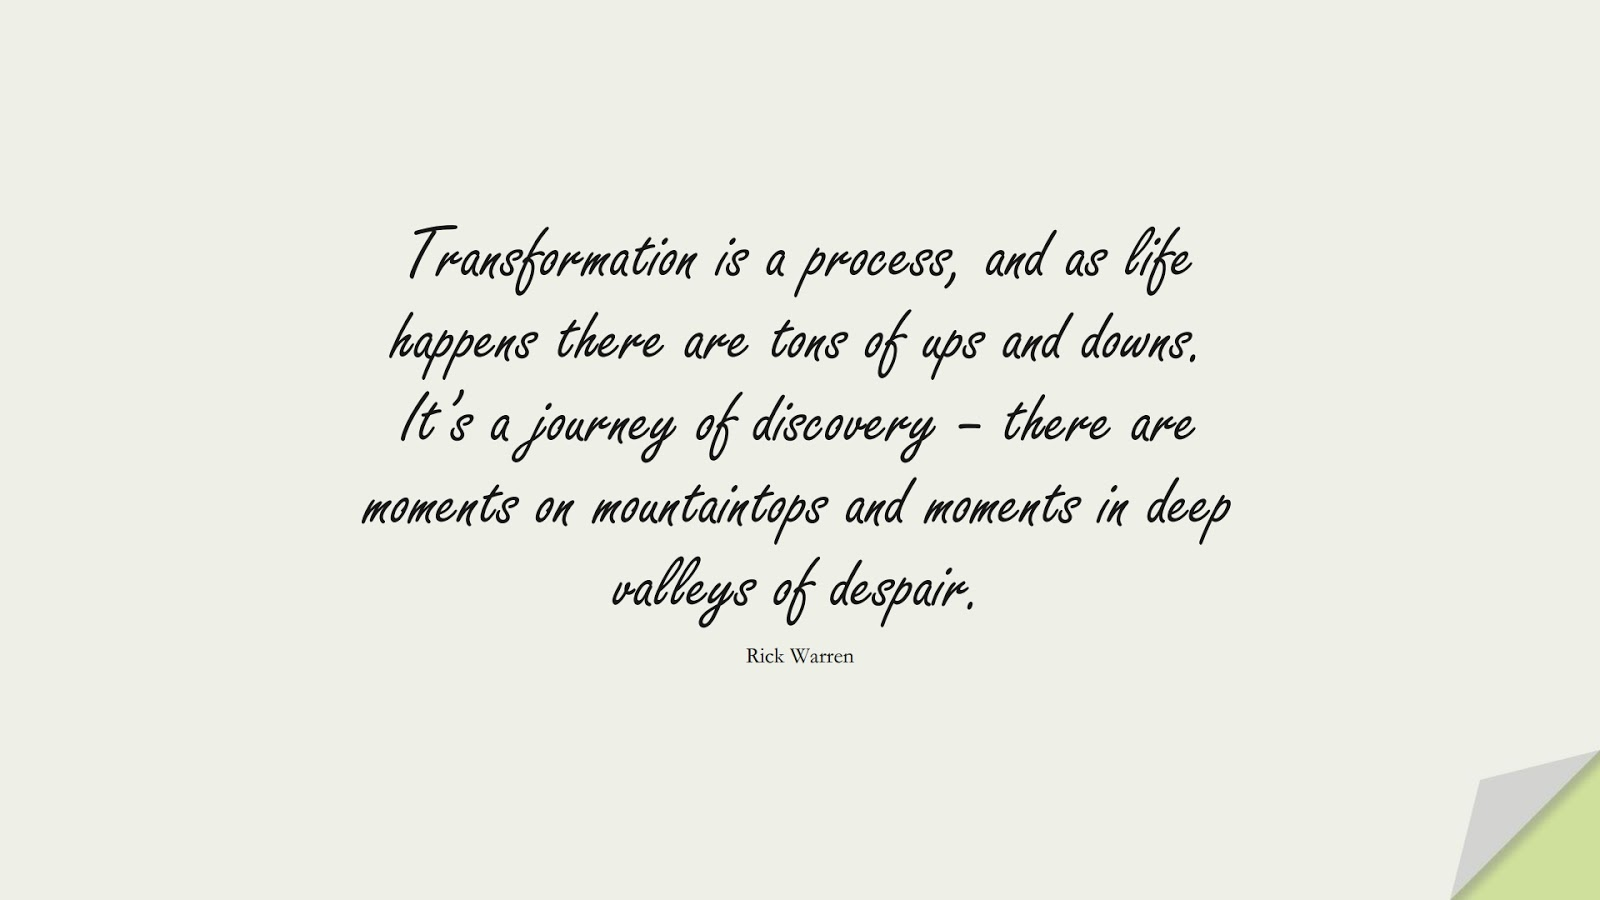 Transformation is a process, and as life happens there are tons of ups and downs. It's a journey of discovery – there are moments on mountaintops and moments in deep valleys of despair. (Rick Warren);  #HappinessQuotes